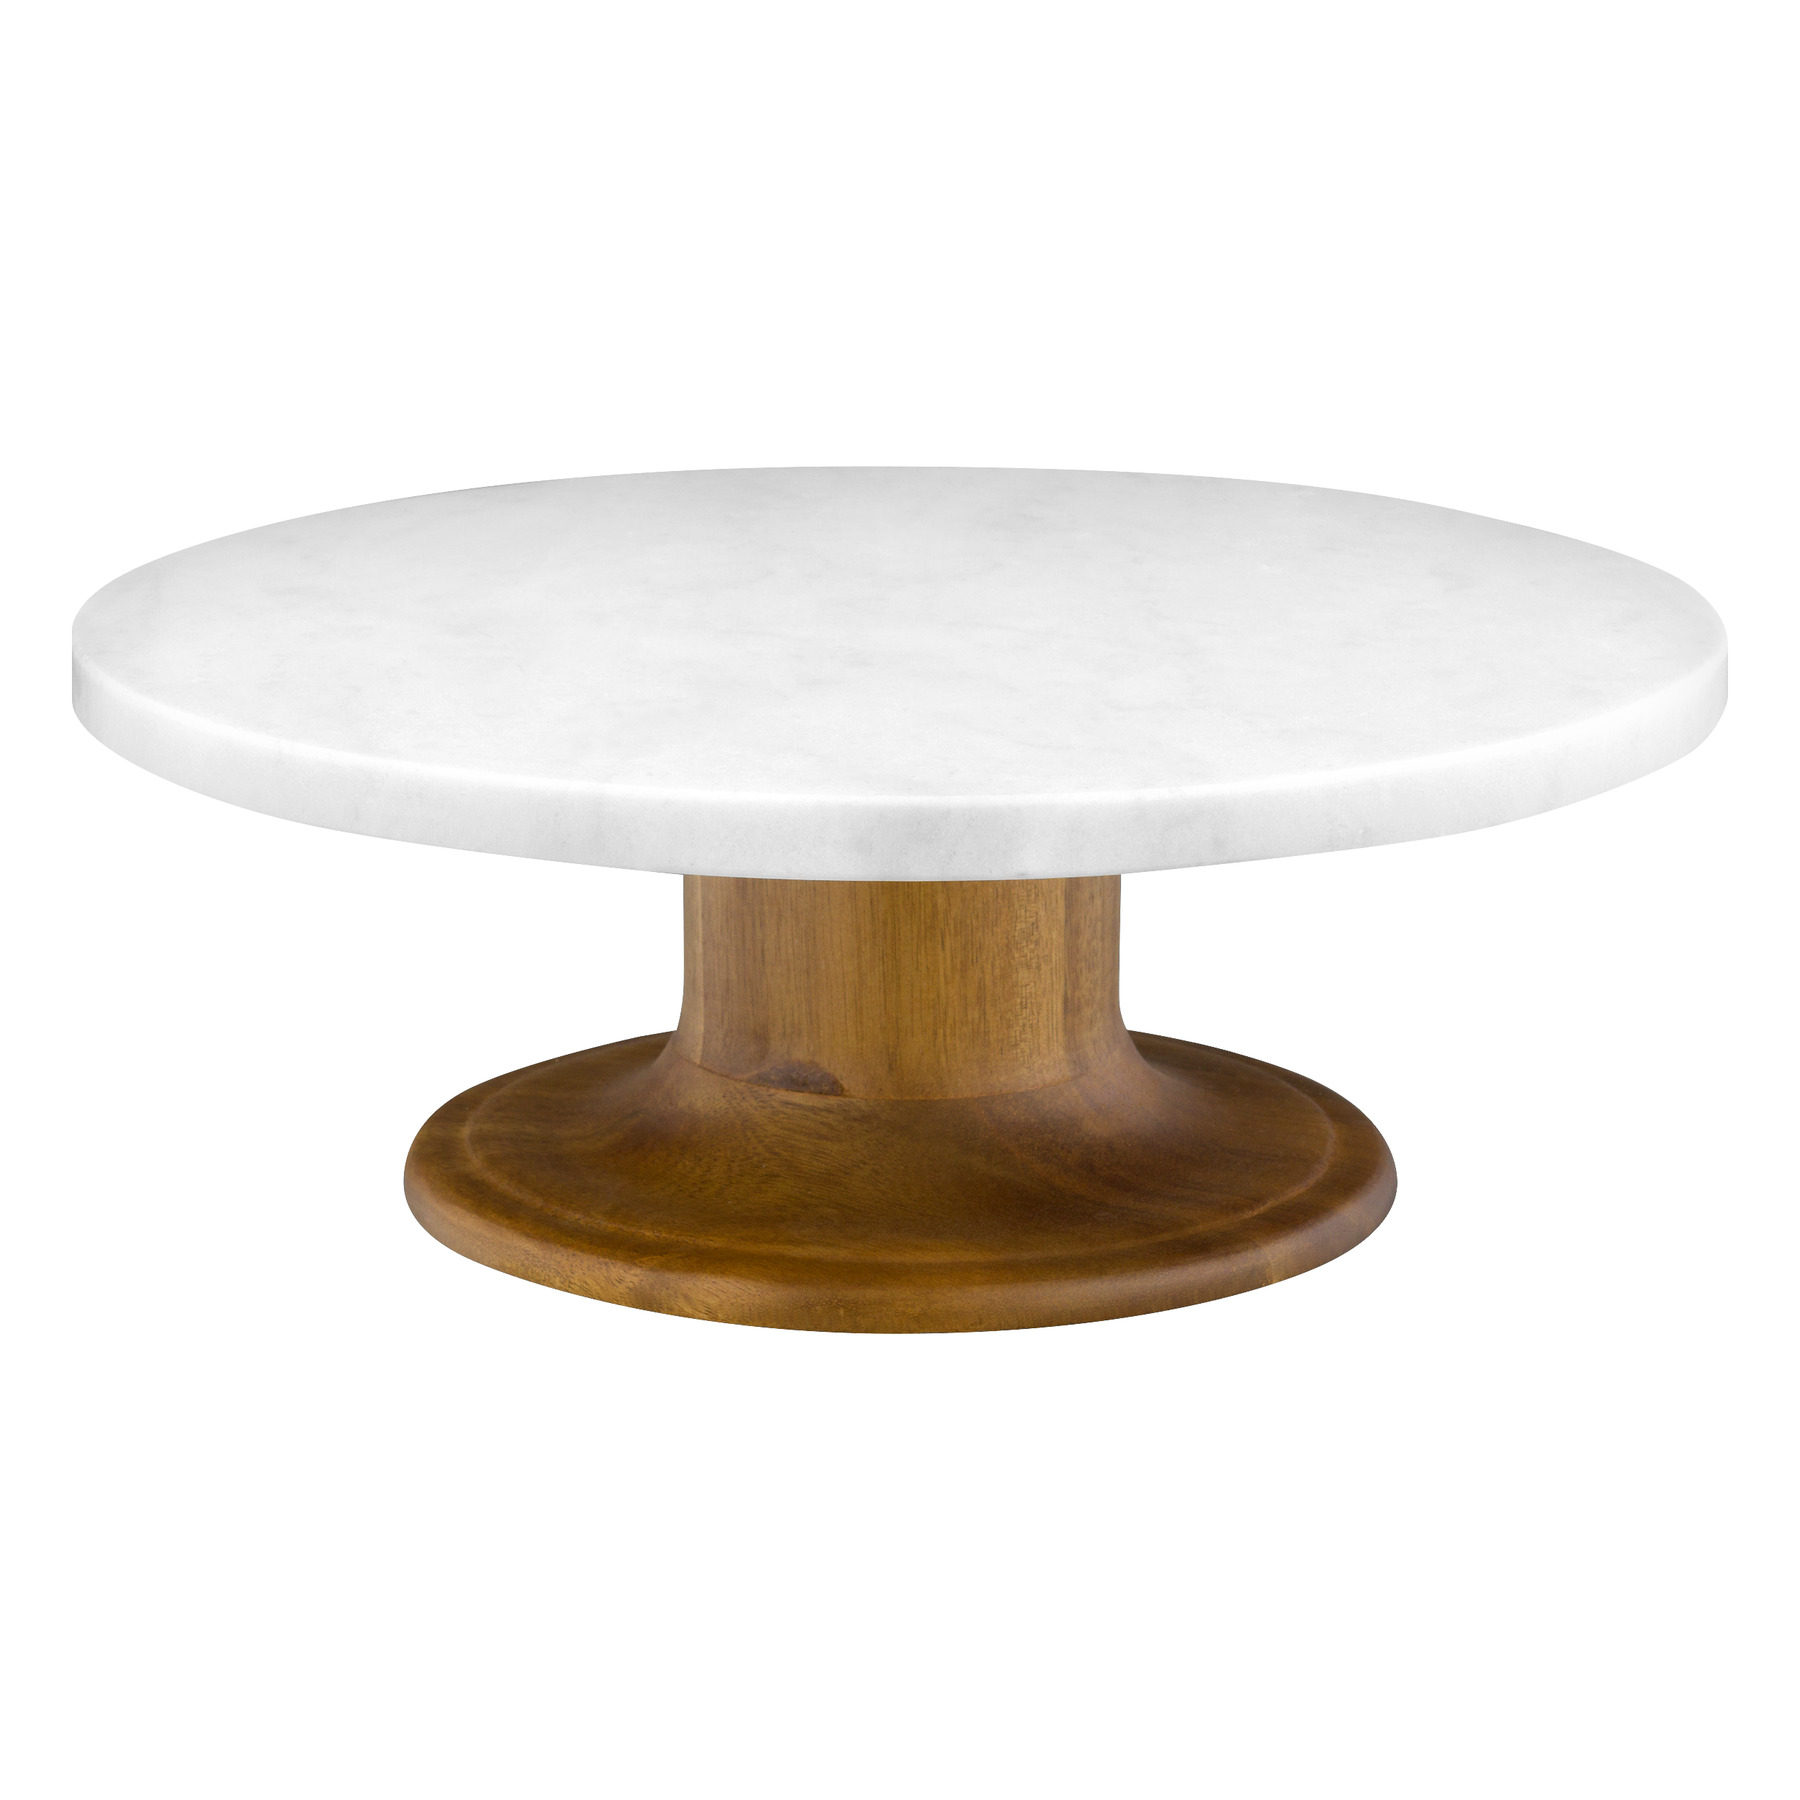 pedestal stainless diameter height stand on about top steel round products cake giftbay wedding